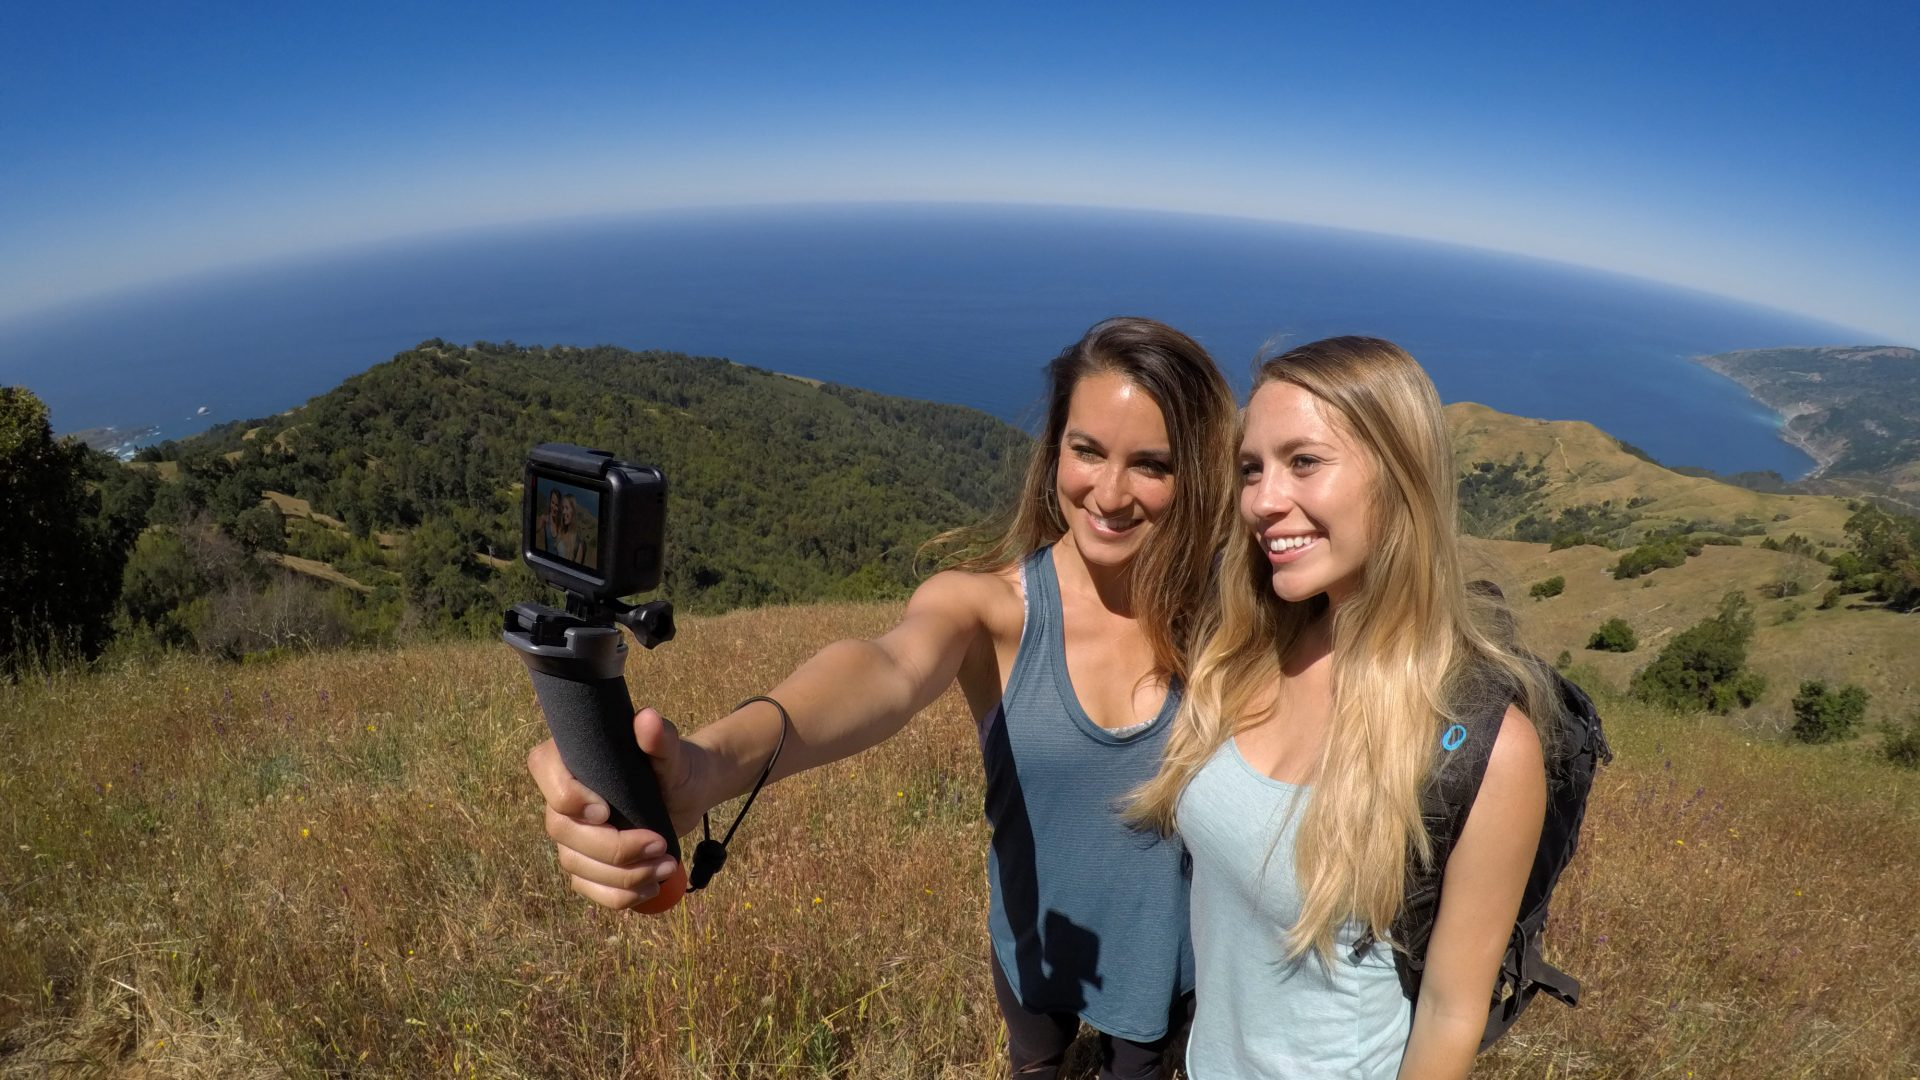 Sharing your GoPro footage has never been easier with QuikStories